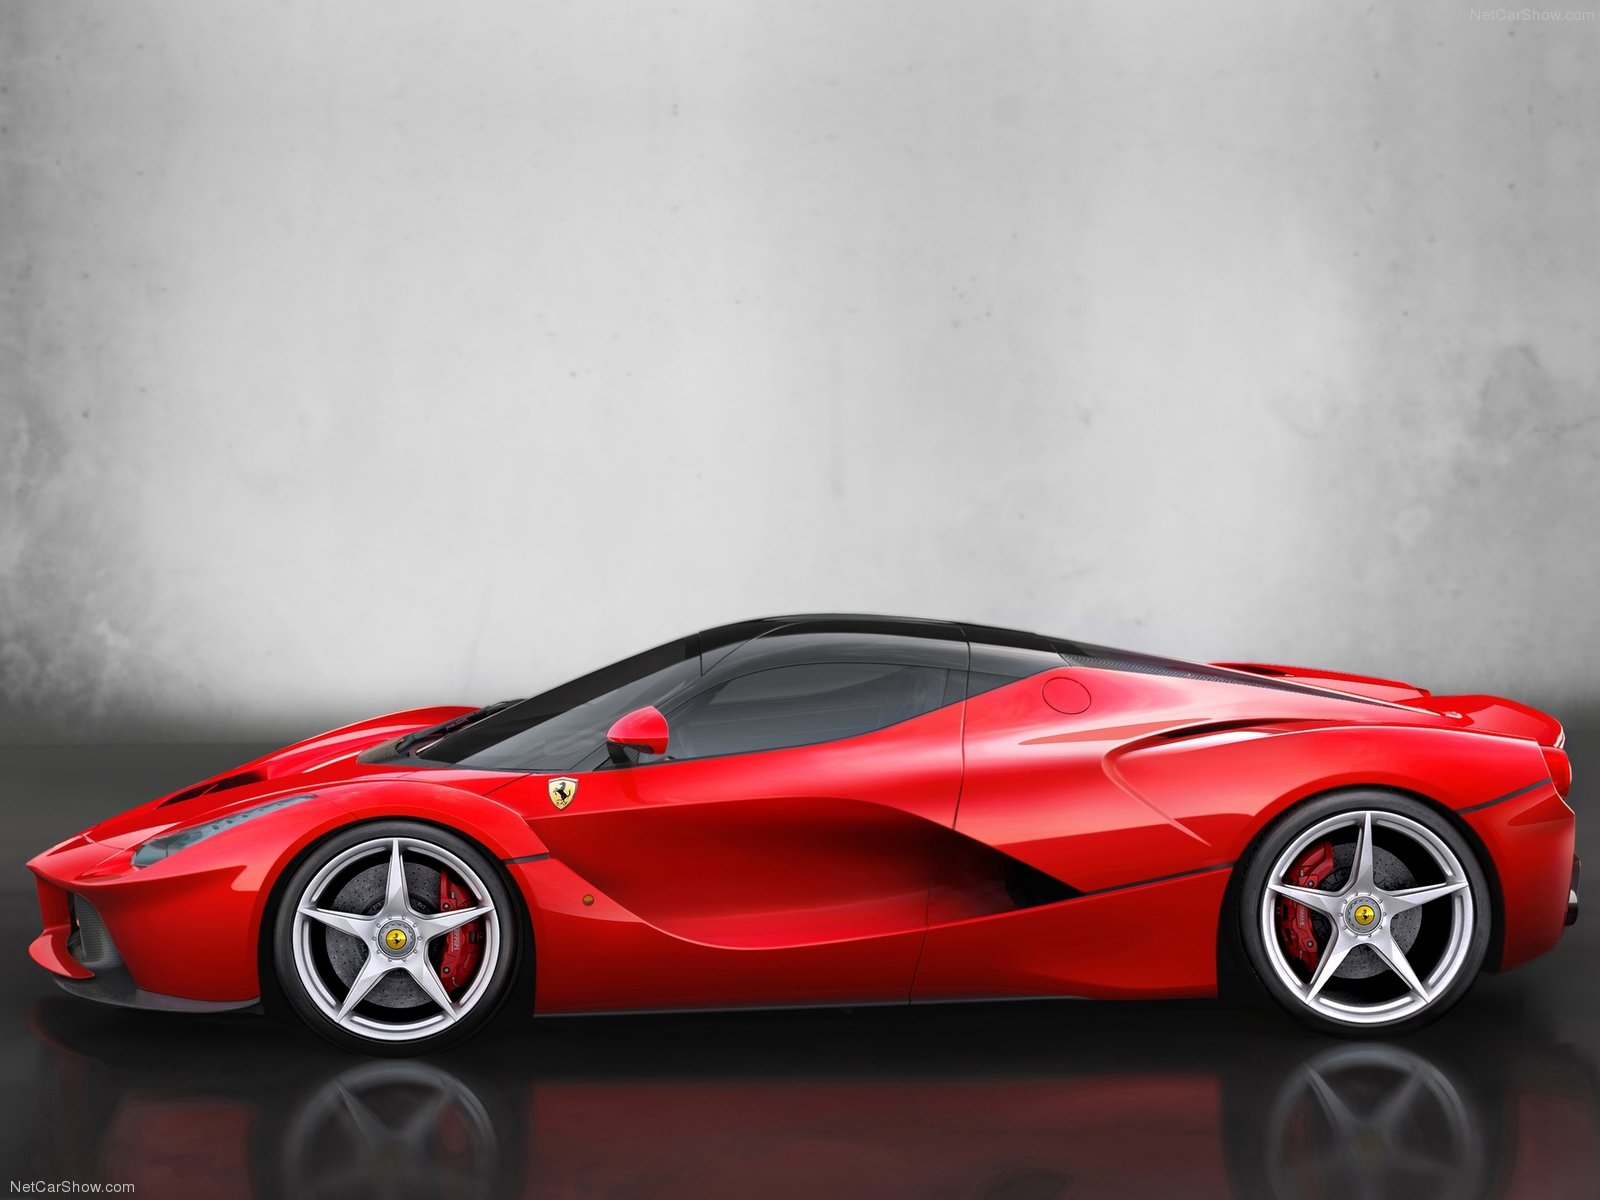 Ferrari-LaFerrari_2014_1600x1200_wallpaper_03.jpg